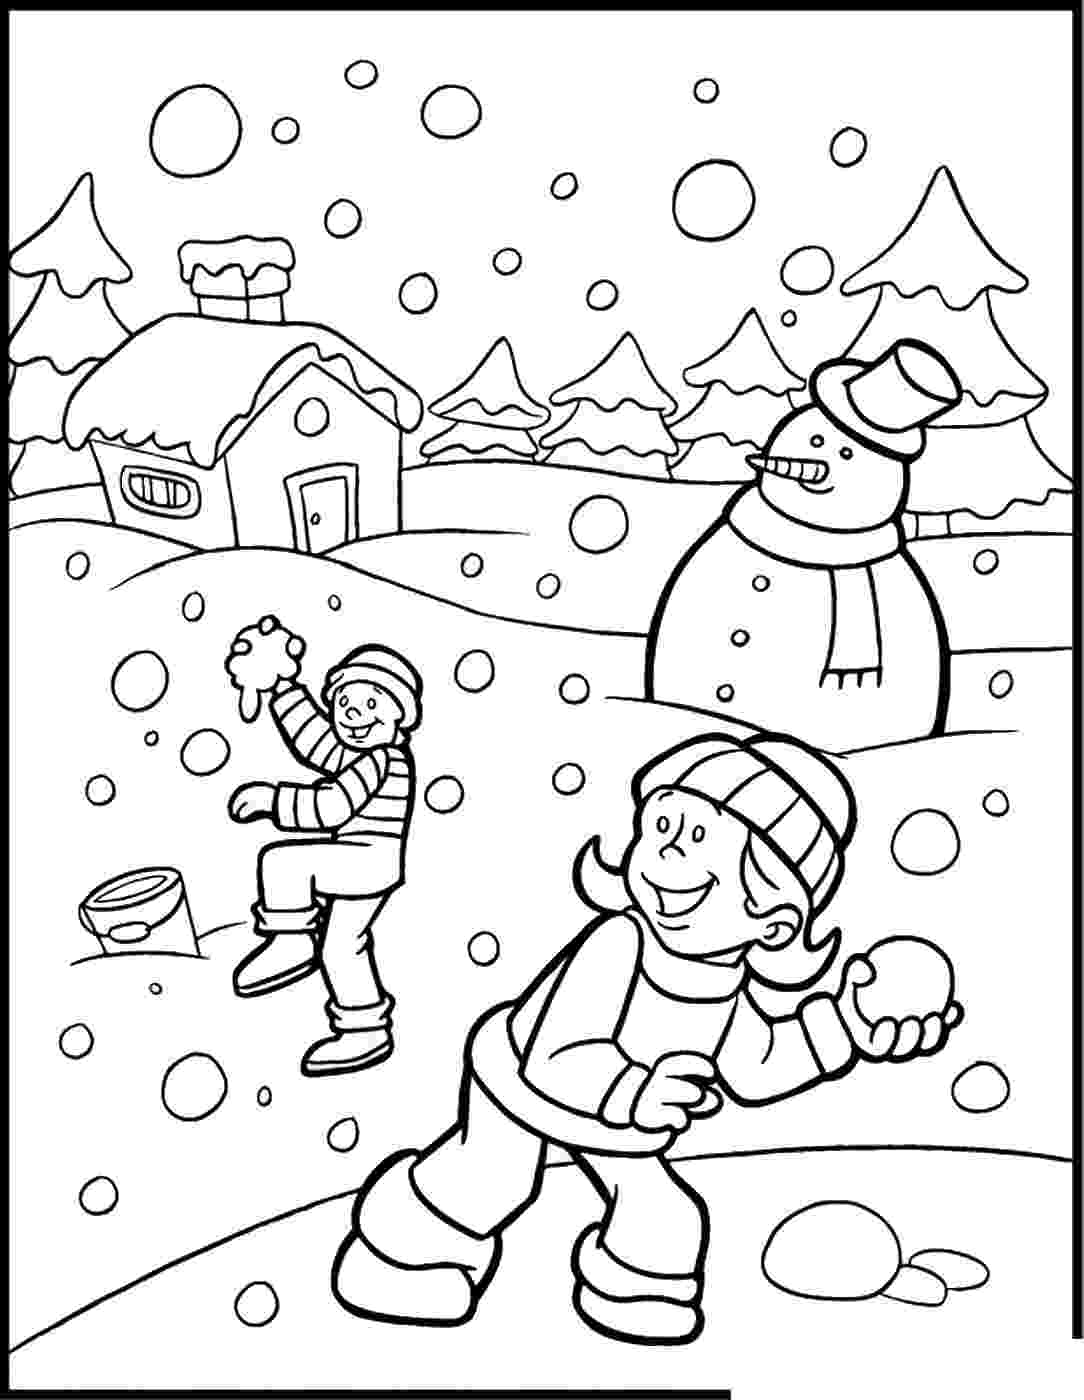 printable coloring pictures printable toad coloring pages for kids cool2bkids pictures coloring printable